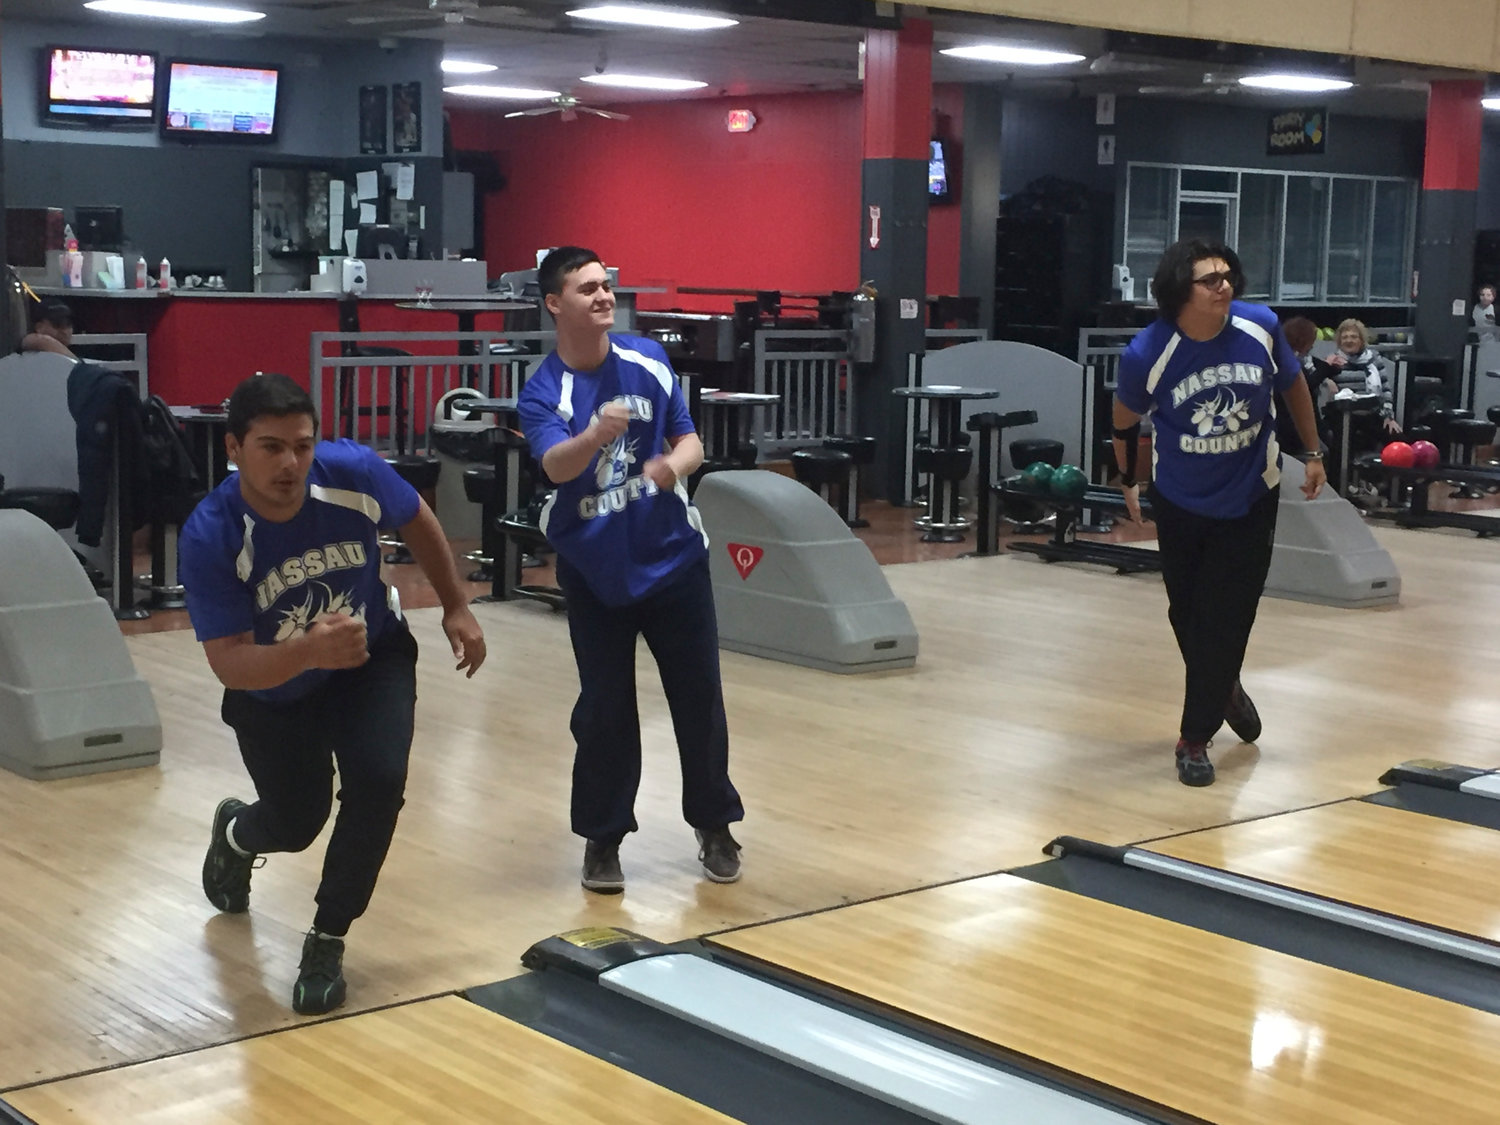 The Five Towns will be well-represented at the New York State High school bowling championships by Hewlett bowlers Dillon Ristano, left, and Zane Lipson, far right, and Lawrence bowler John Loughlin Jr., center.